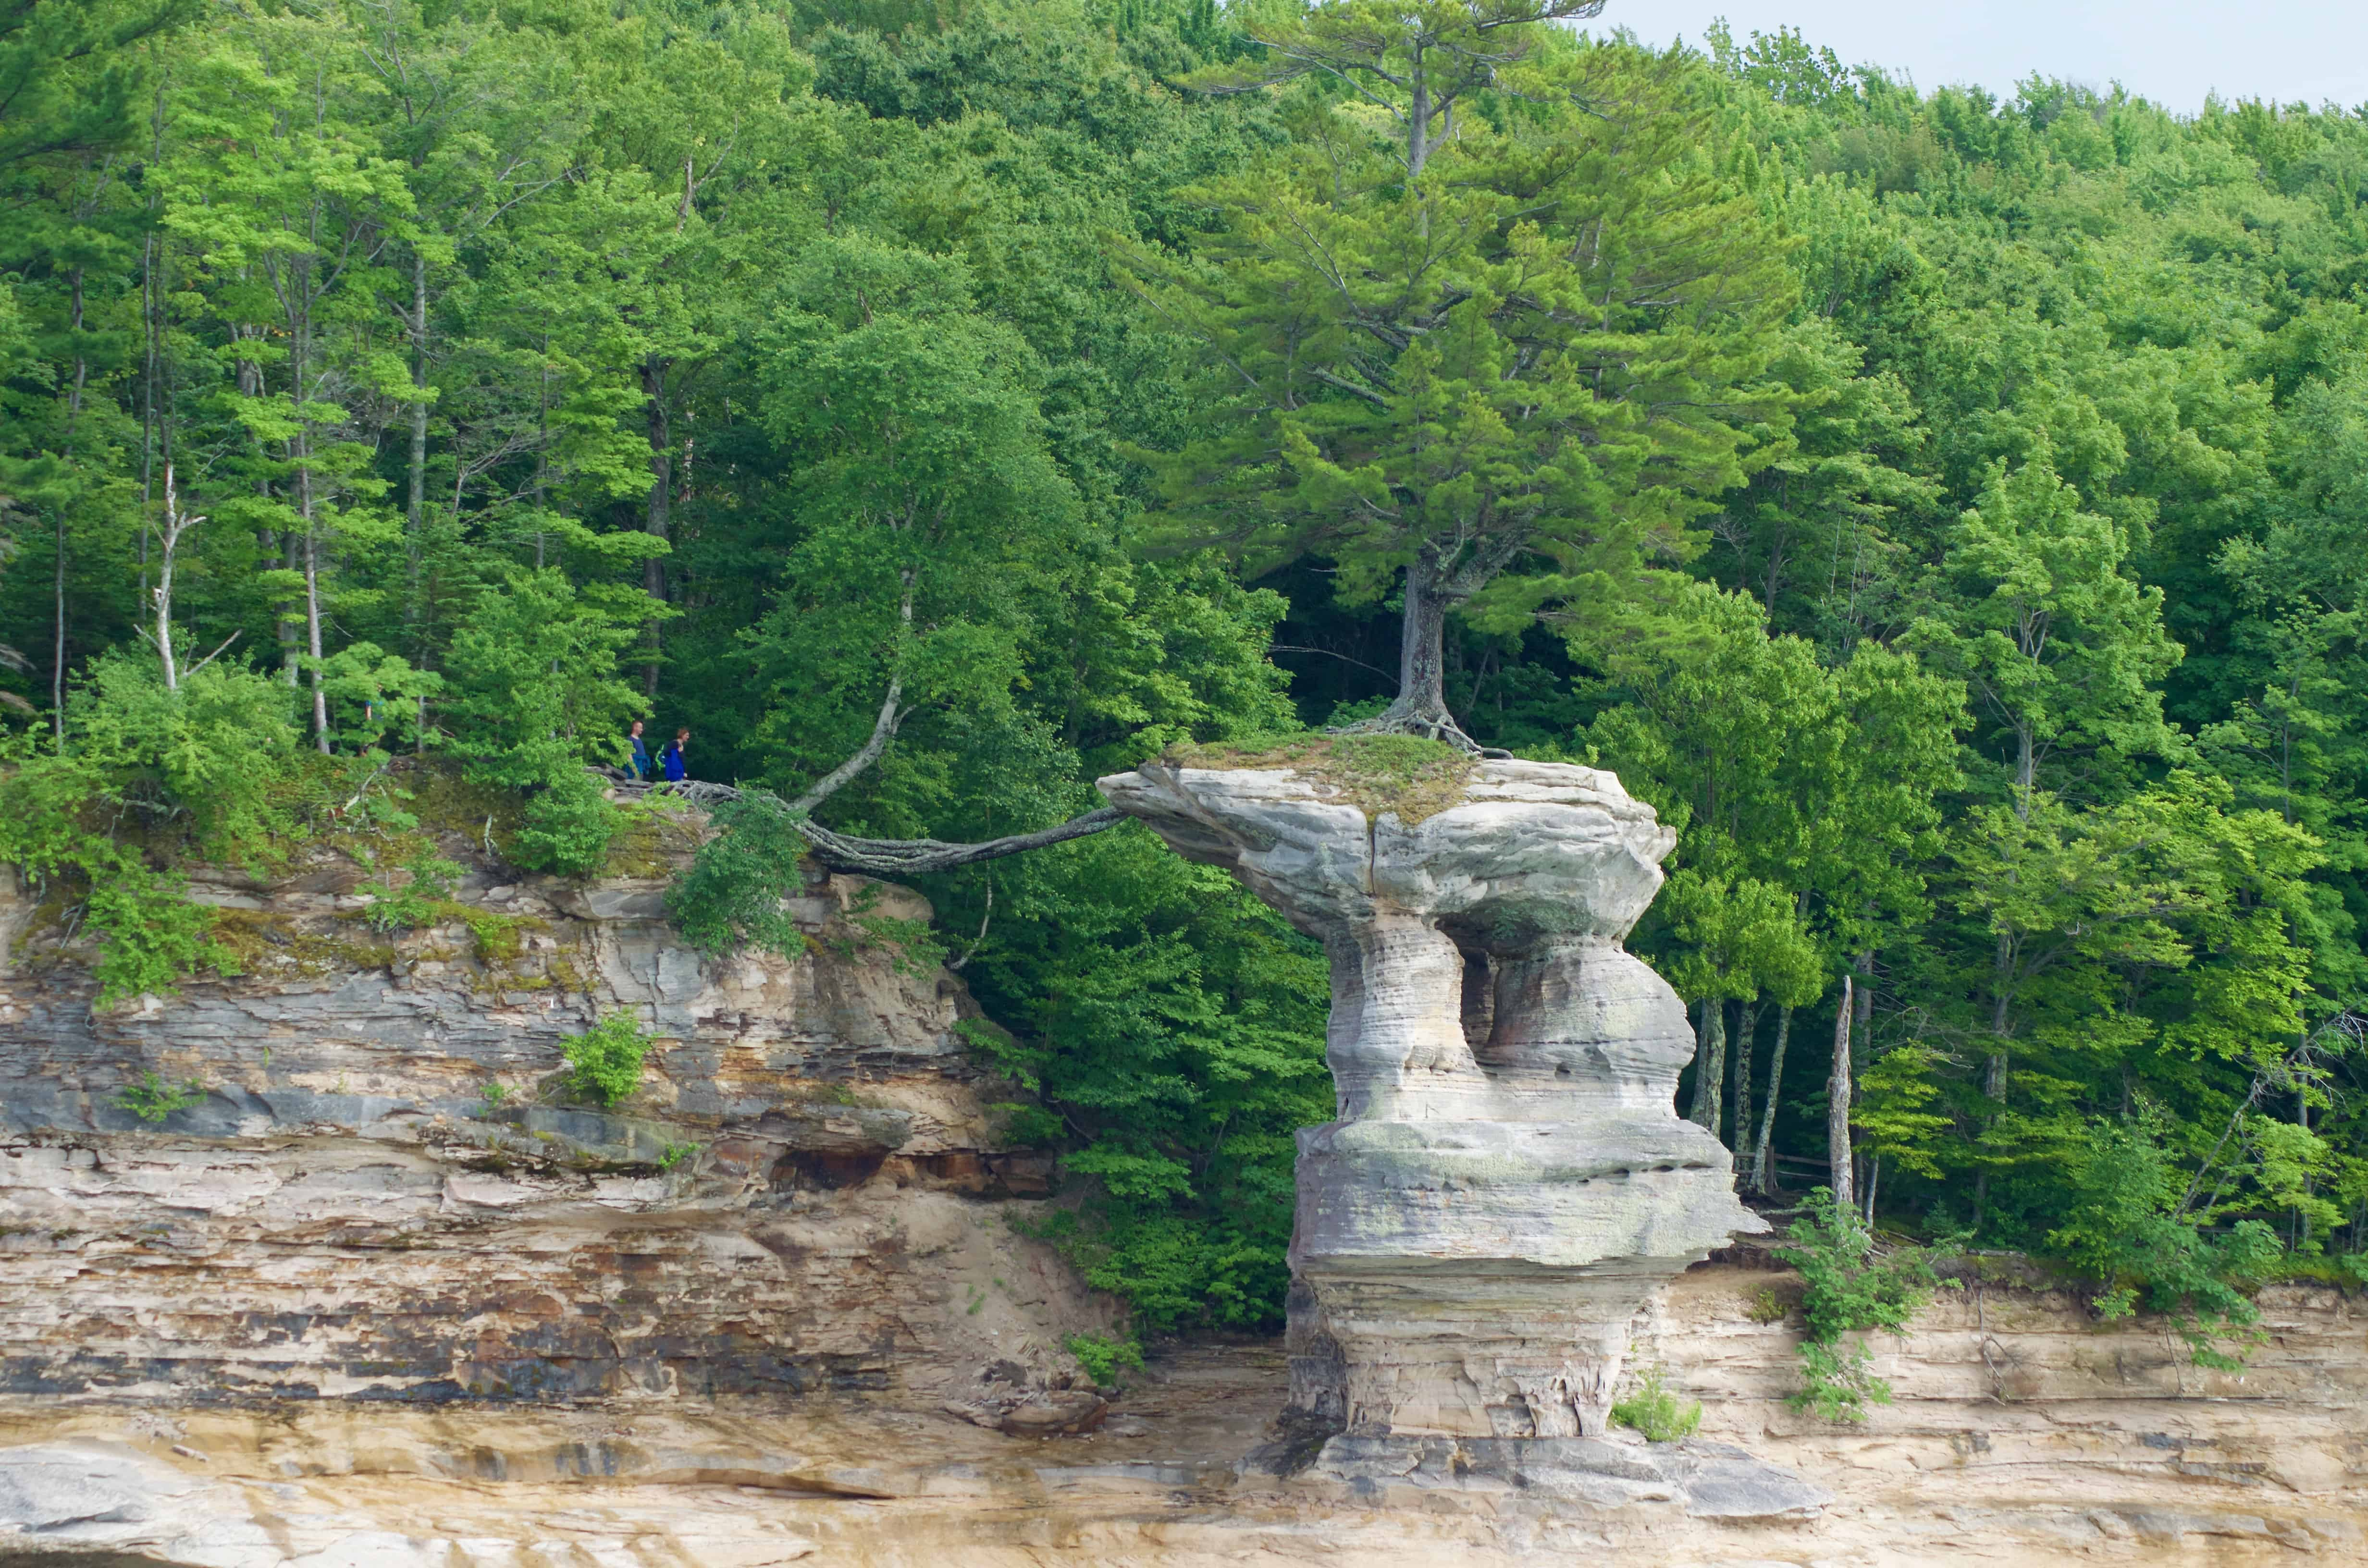 Castle Rock seen on Pictured Rocks Cruise on Lake Superior in Munising Michigan